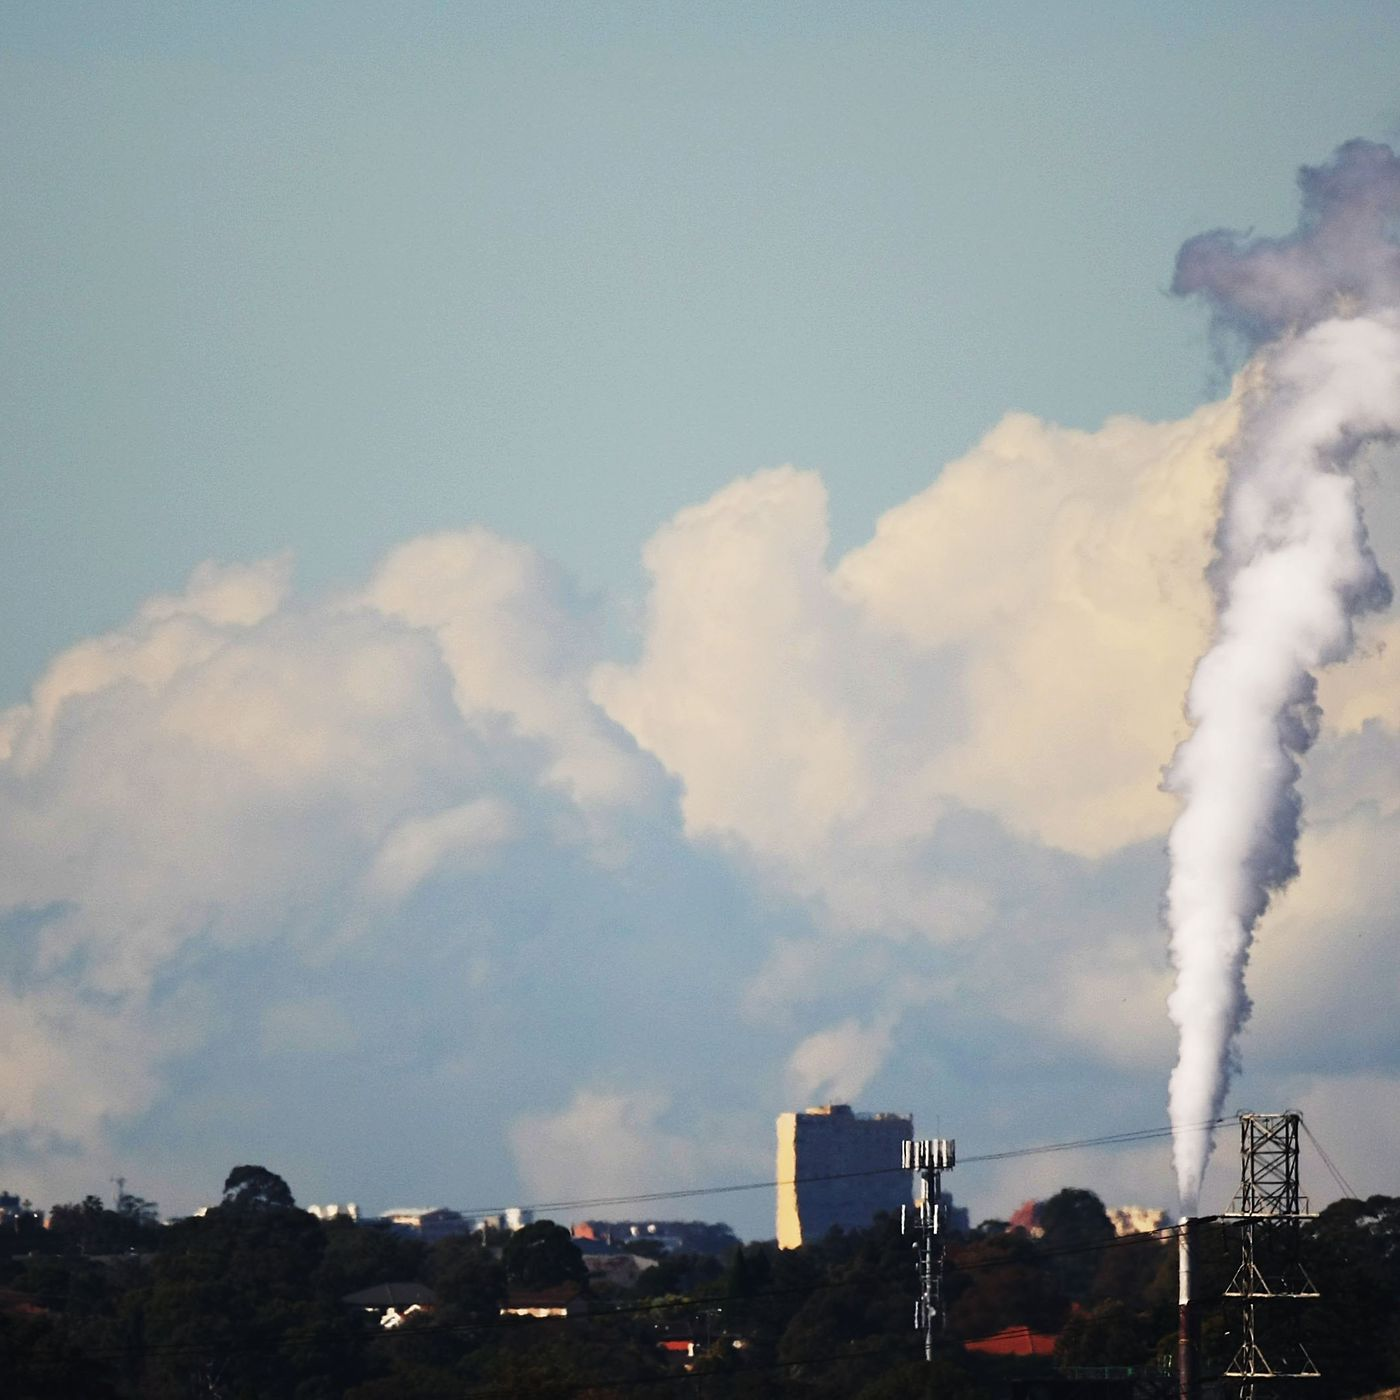 vox.com - Brad Plumer - Australia repealed its carbon tax - and emissions are now soaring